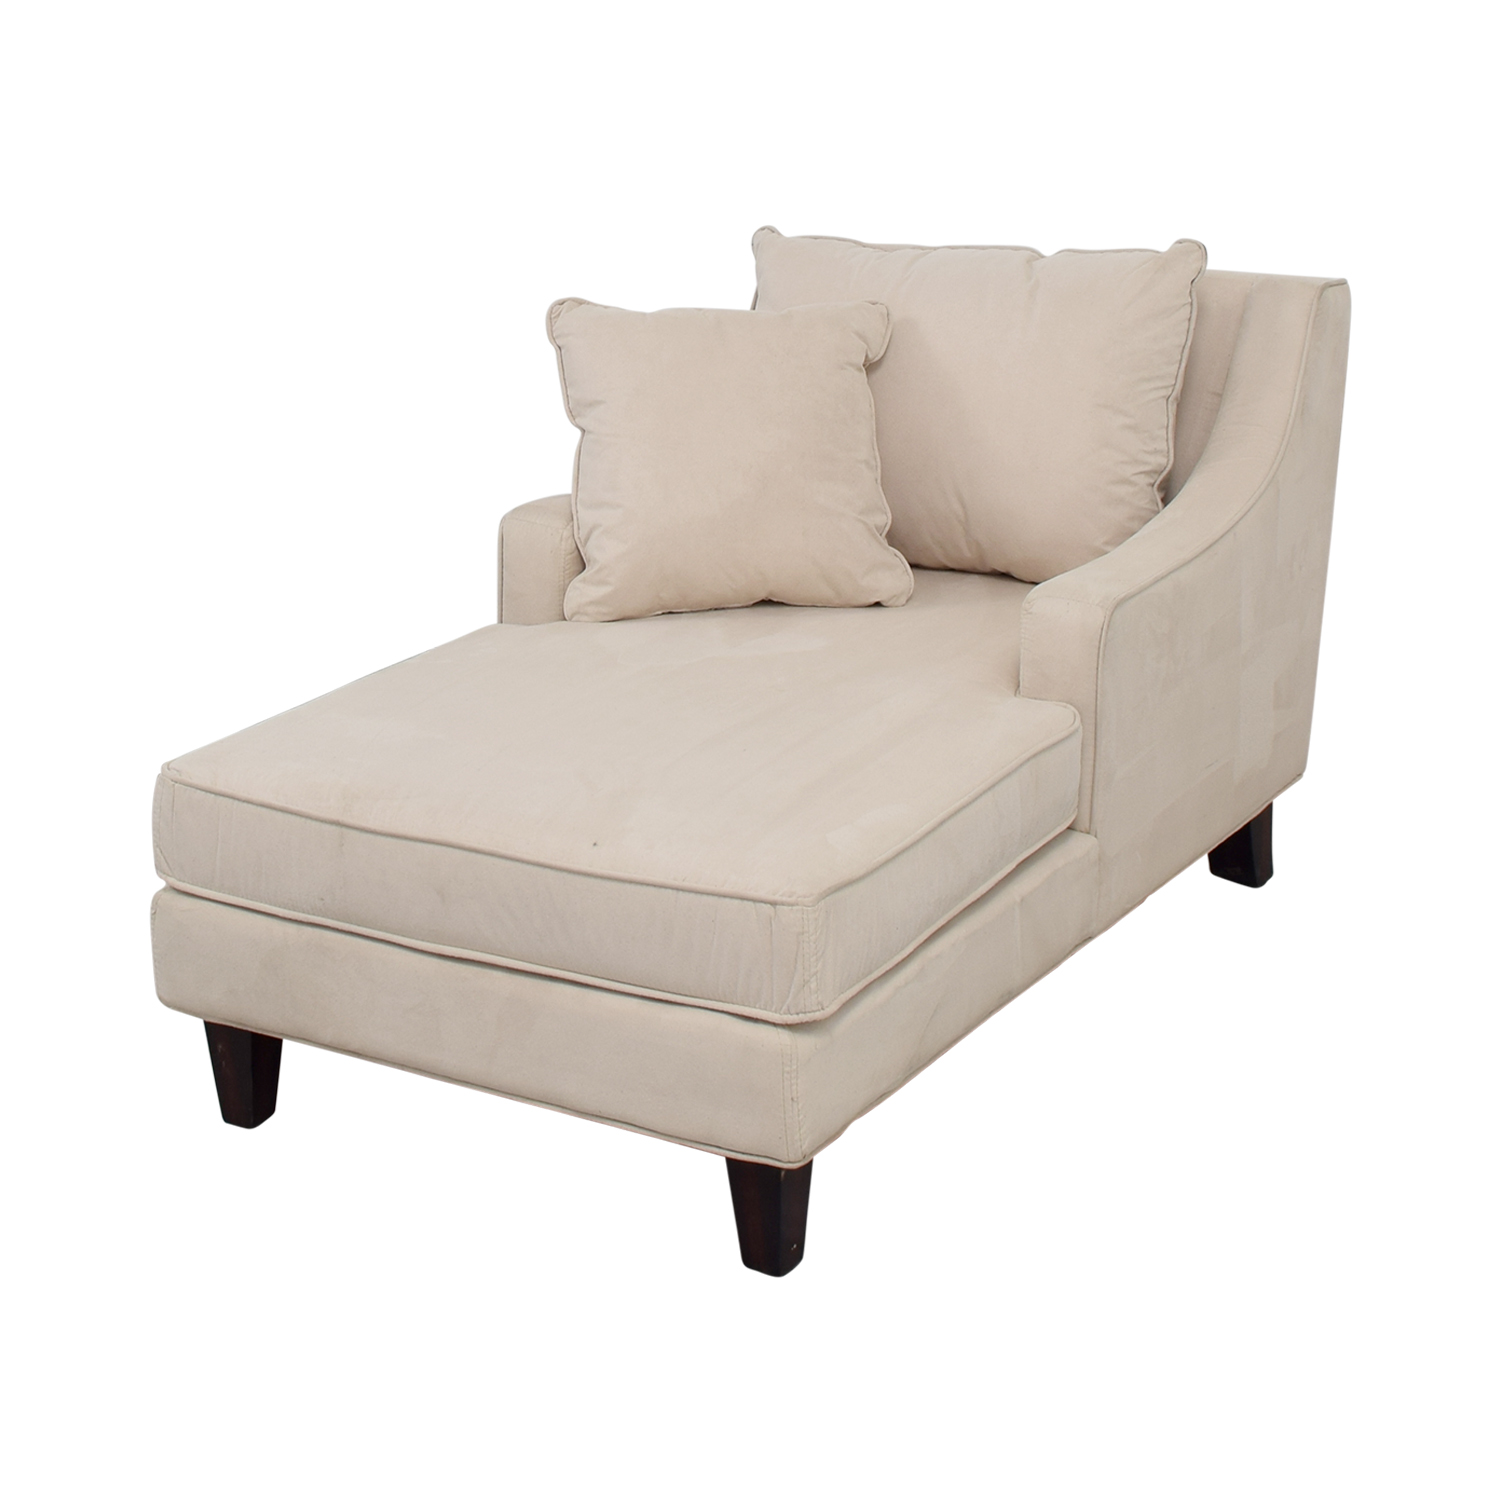 fantastic upholstered chaise ideas legs sized design white over lounge short sofa with simple wooden microfiber